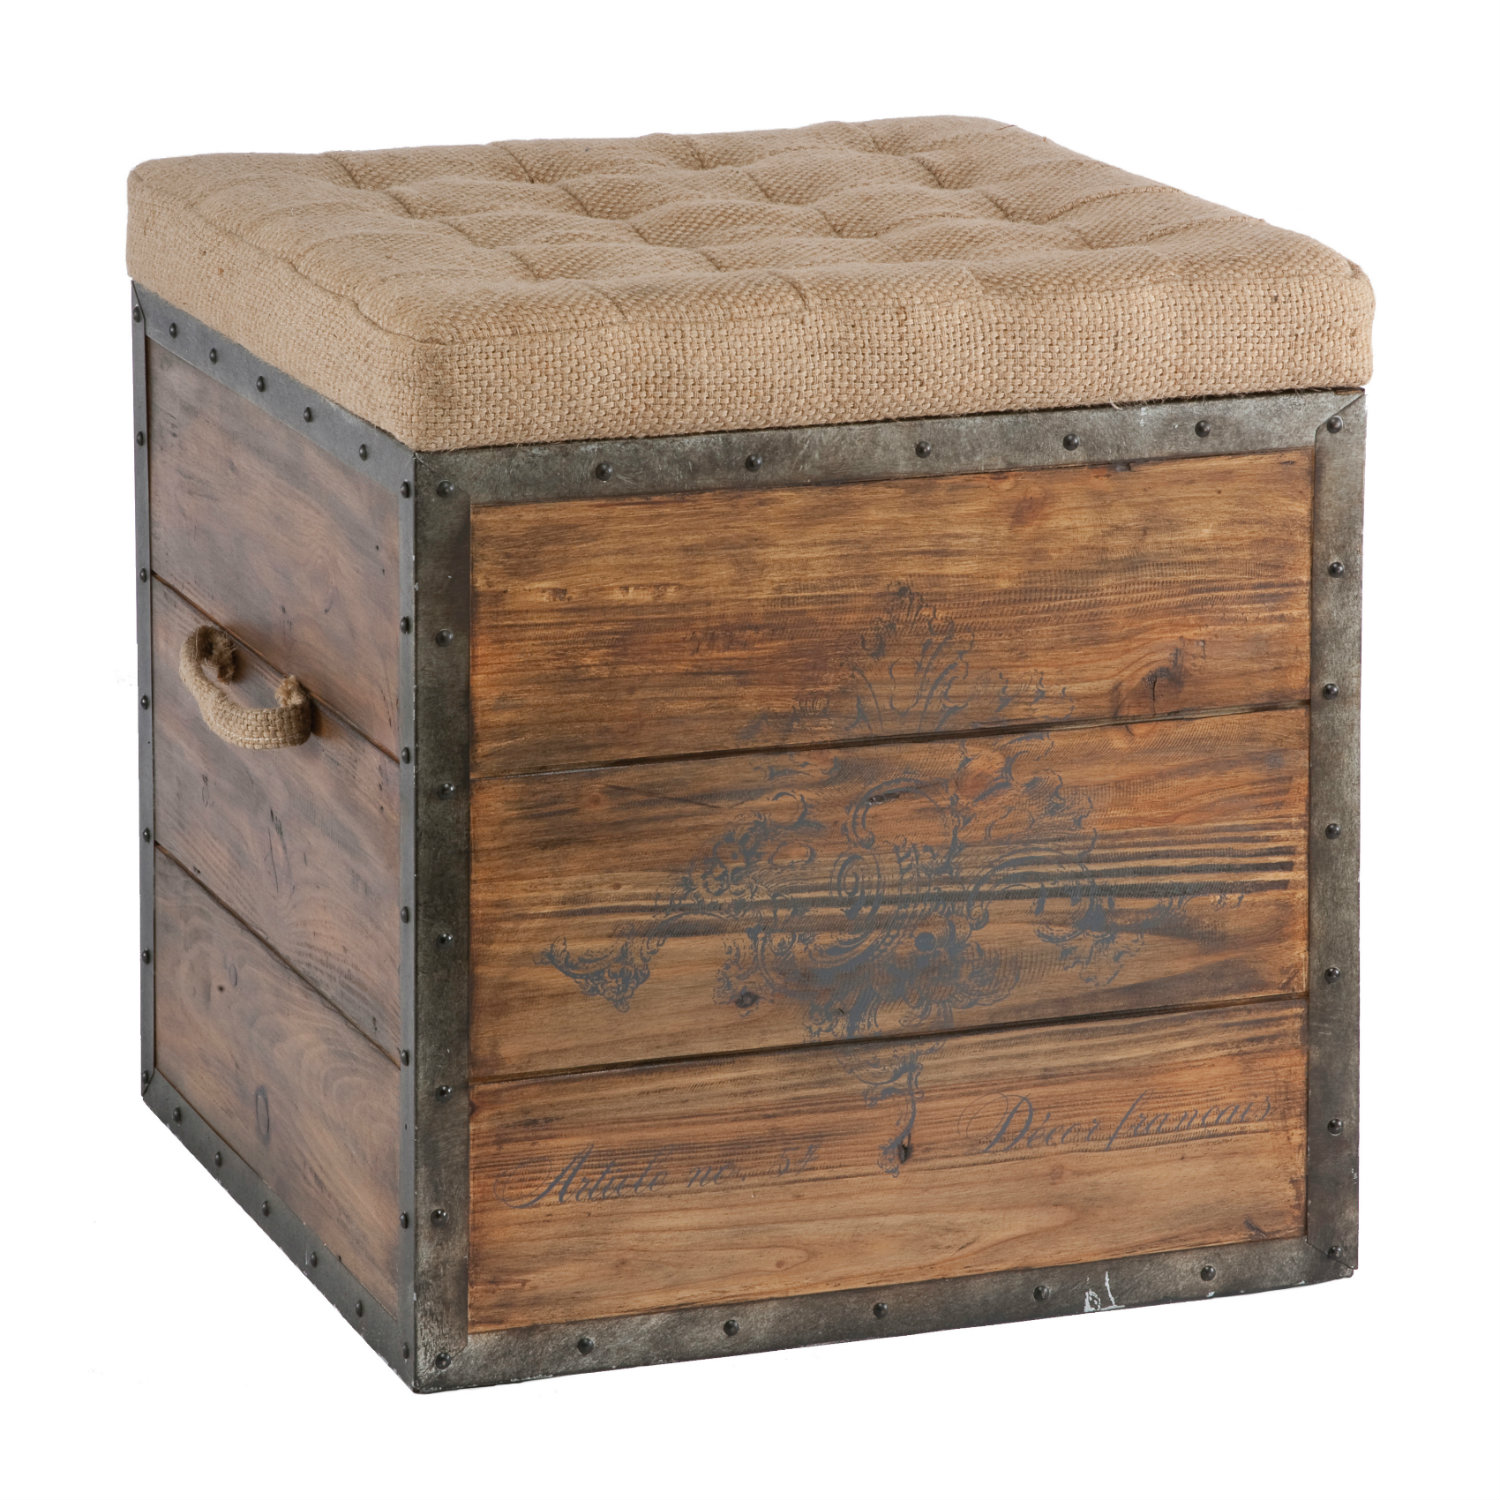 Wonderful image of French Country Wood Crate Burlap Top Cube Ottoman with #8B5F40 color and 1116x1140 pixels